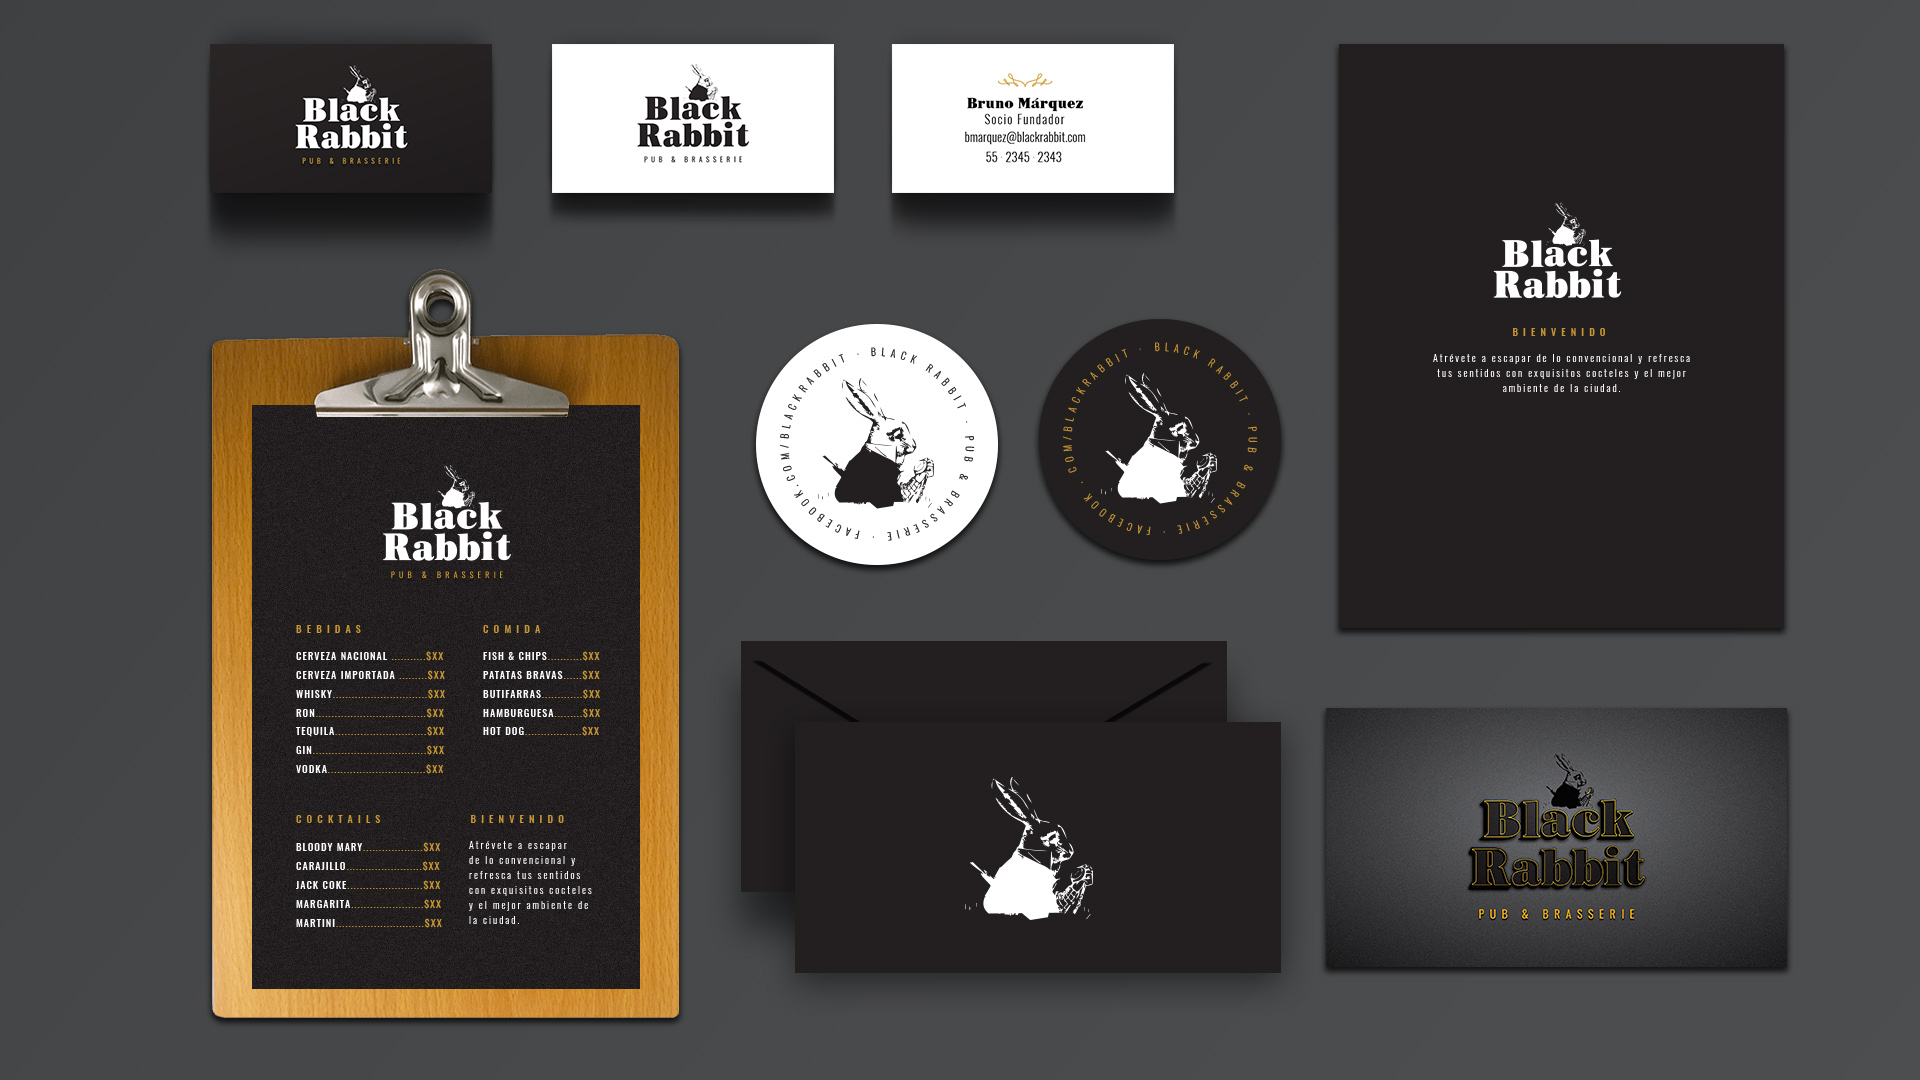 Black Rabbit Branding